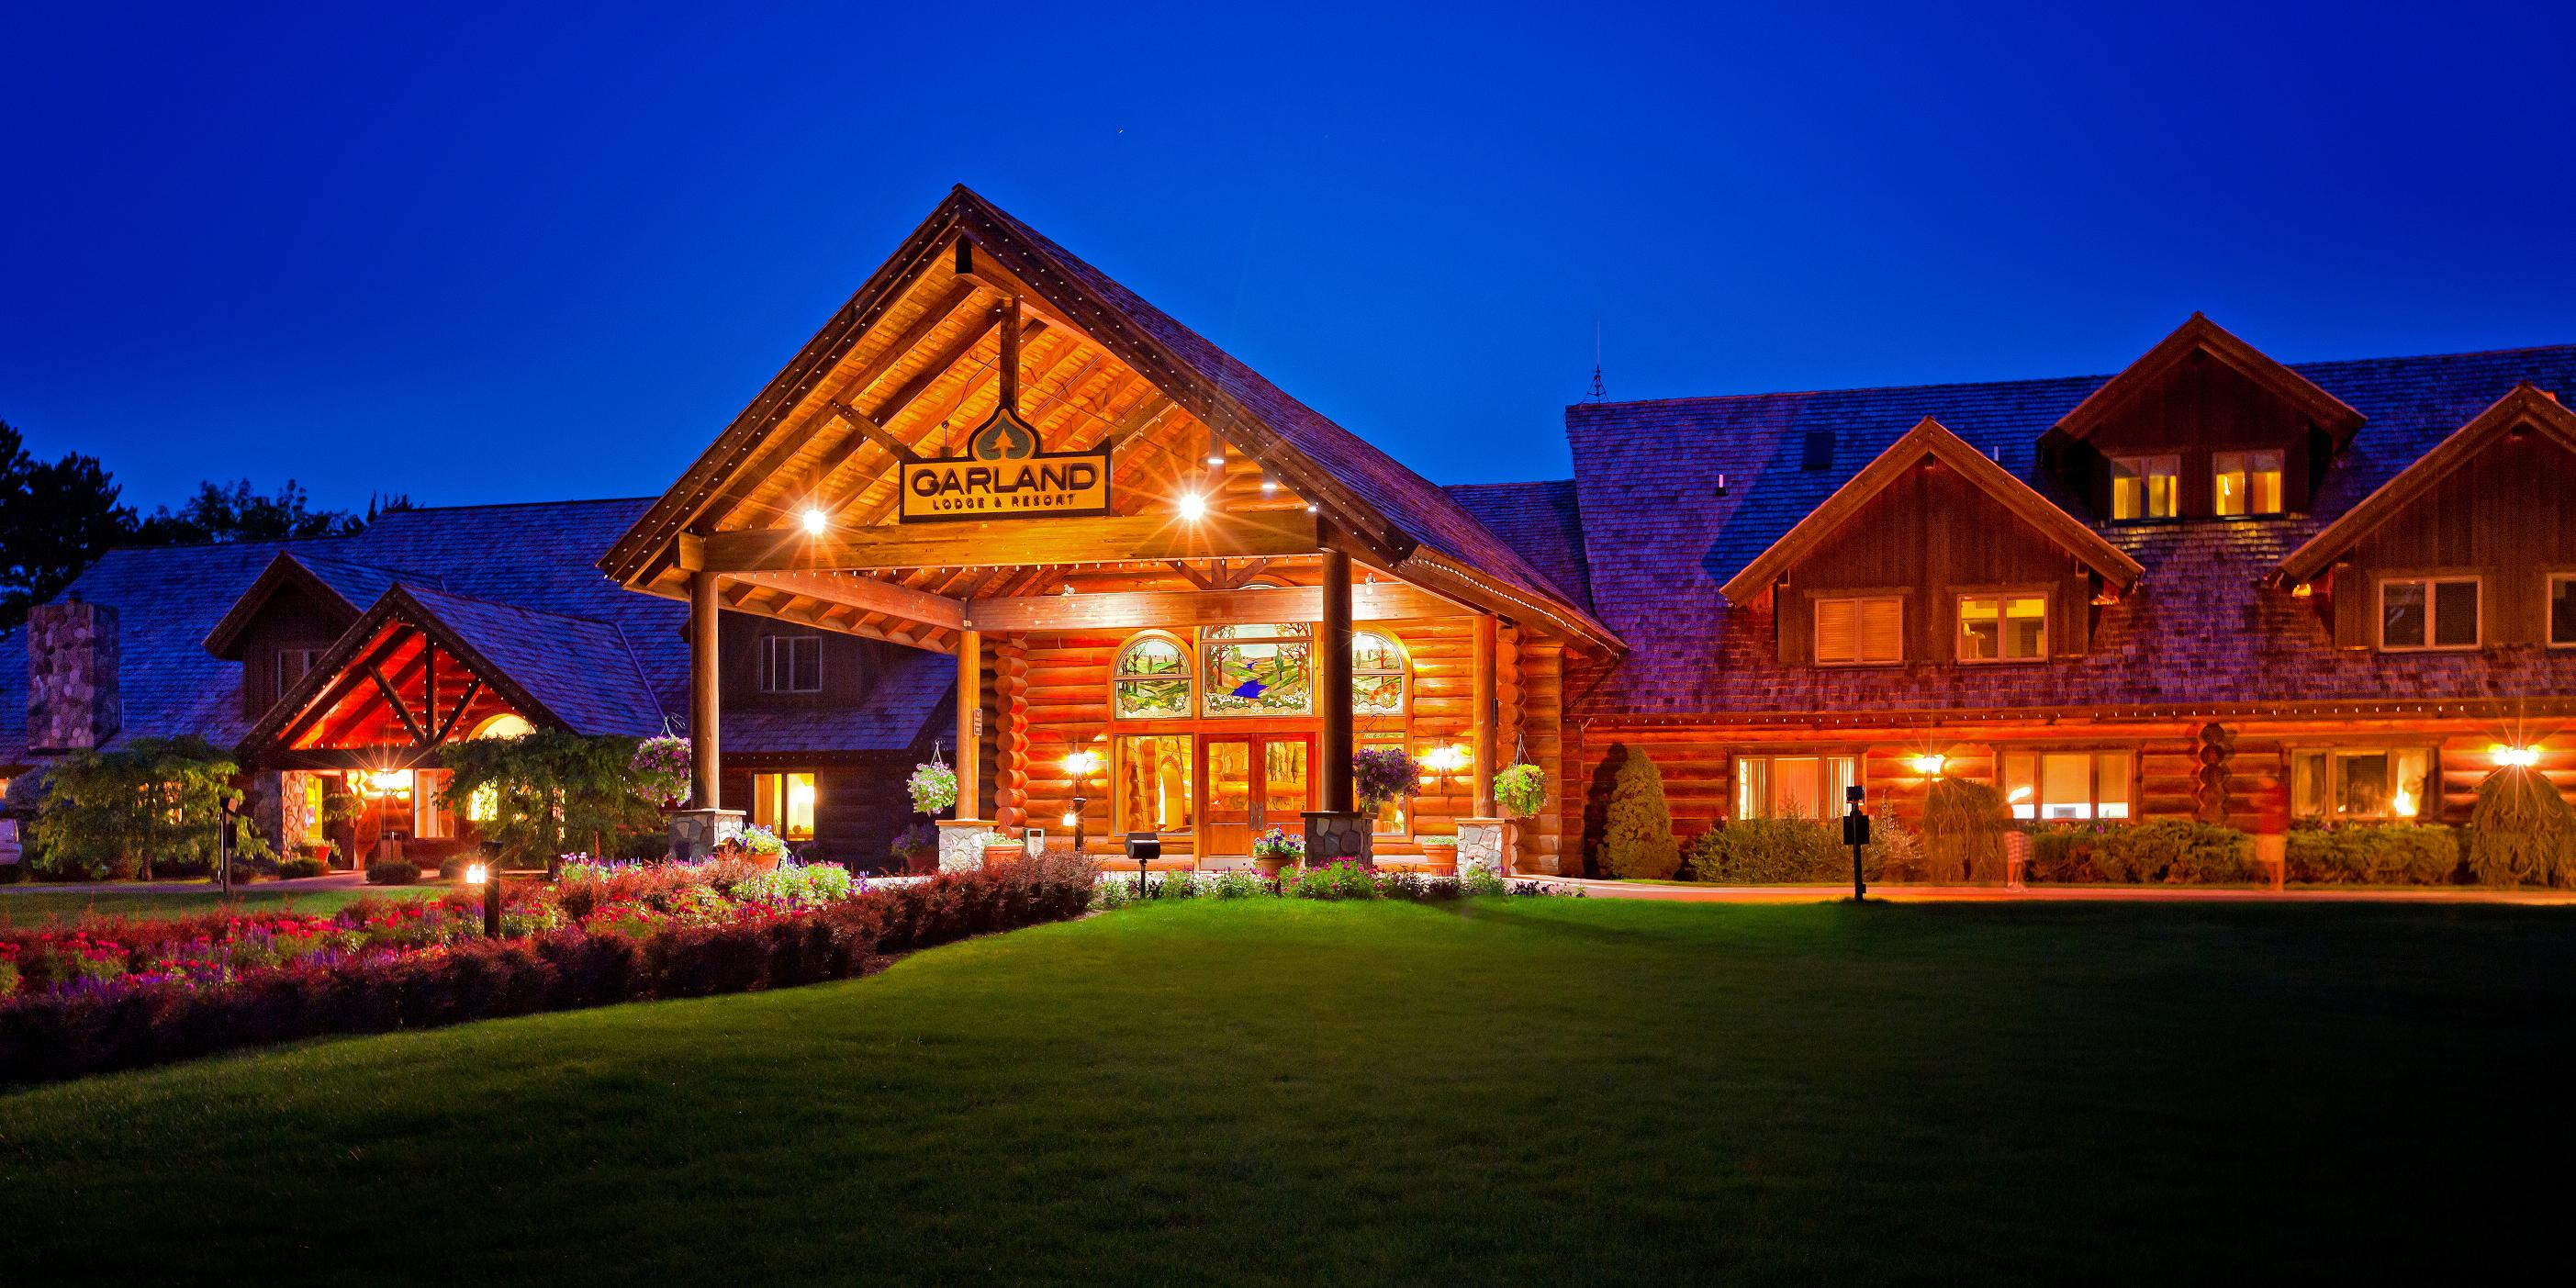 Garland Lodge and Golf Resort - Lewiston, MI 49756 - (877)442-7526 | ShowMeLocal.com